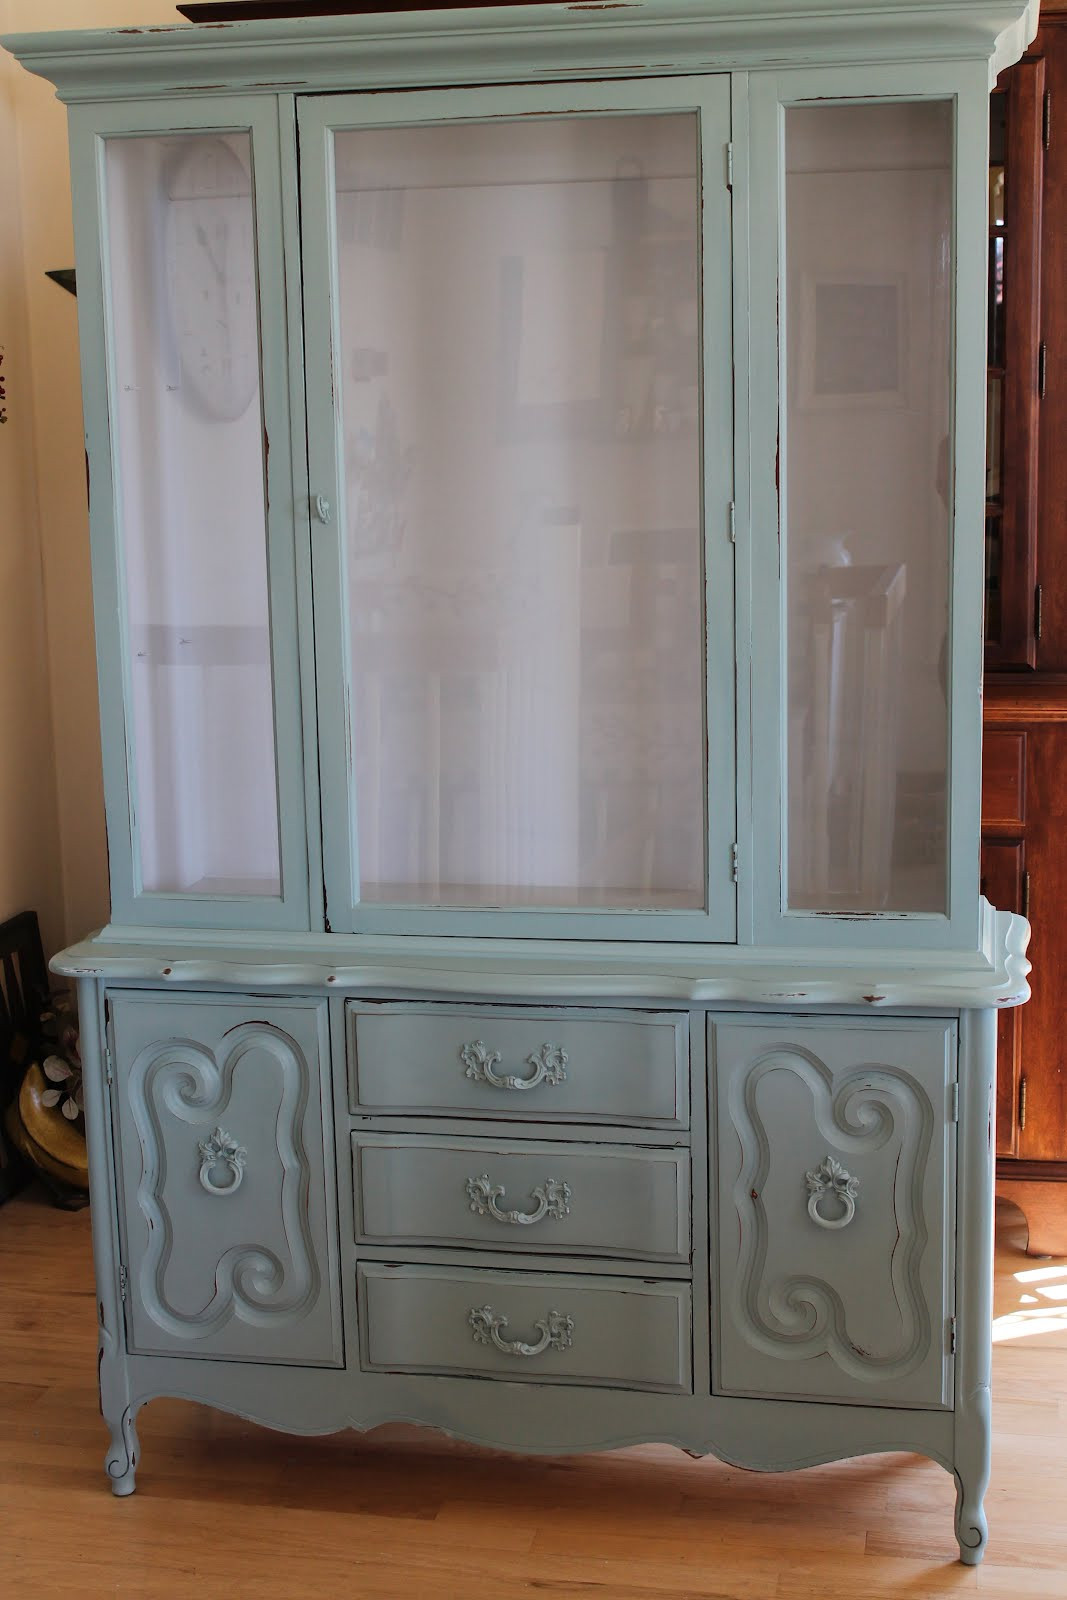 Best ideas about Chalk Paint DIY . Save or Pin Elizabeth & Co How I Make Chalk Paint Now.